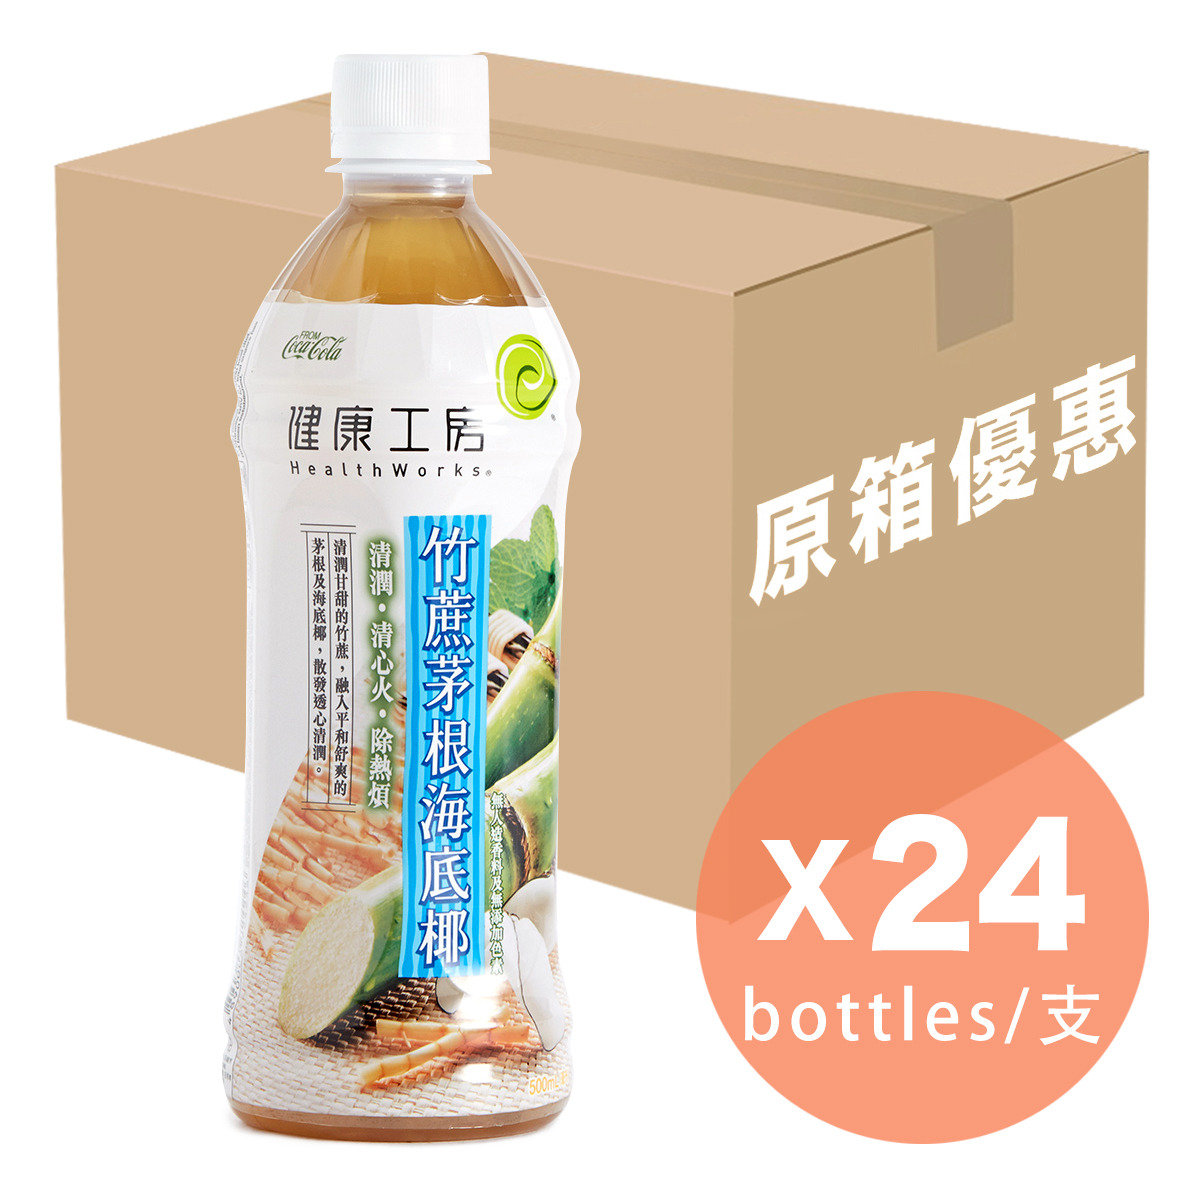 [Full Case] Sugarcane and Sea Coconut Herbal Drink PET